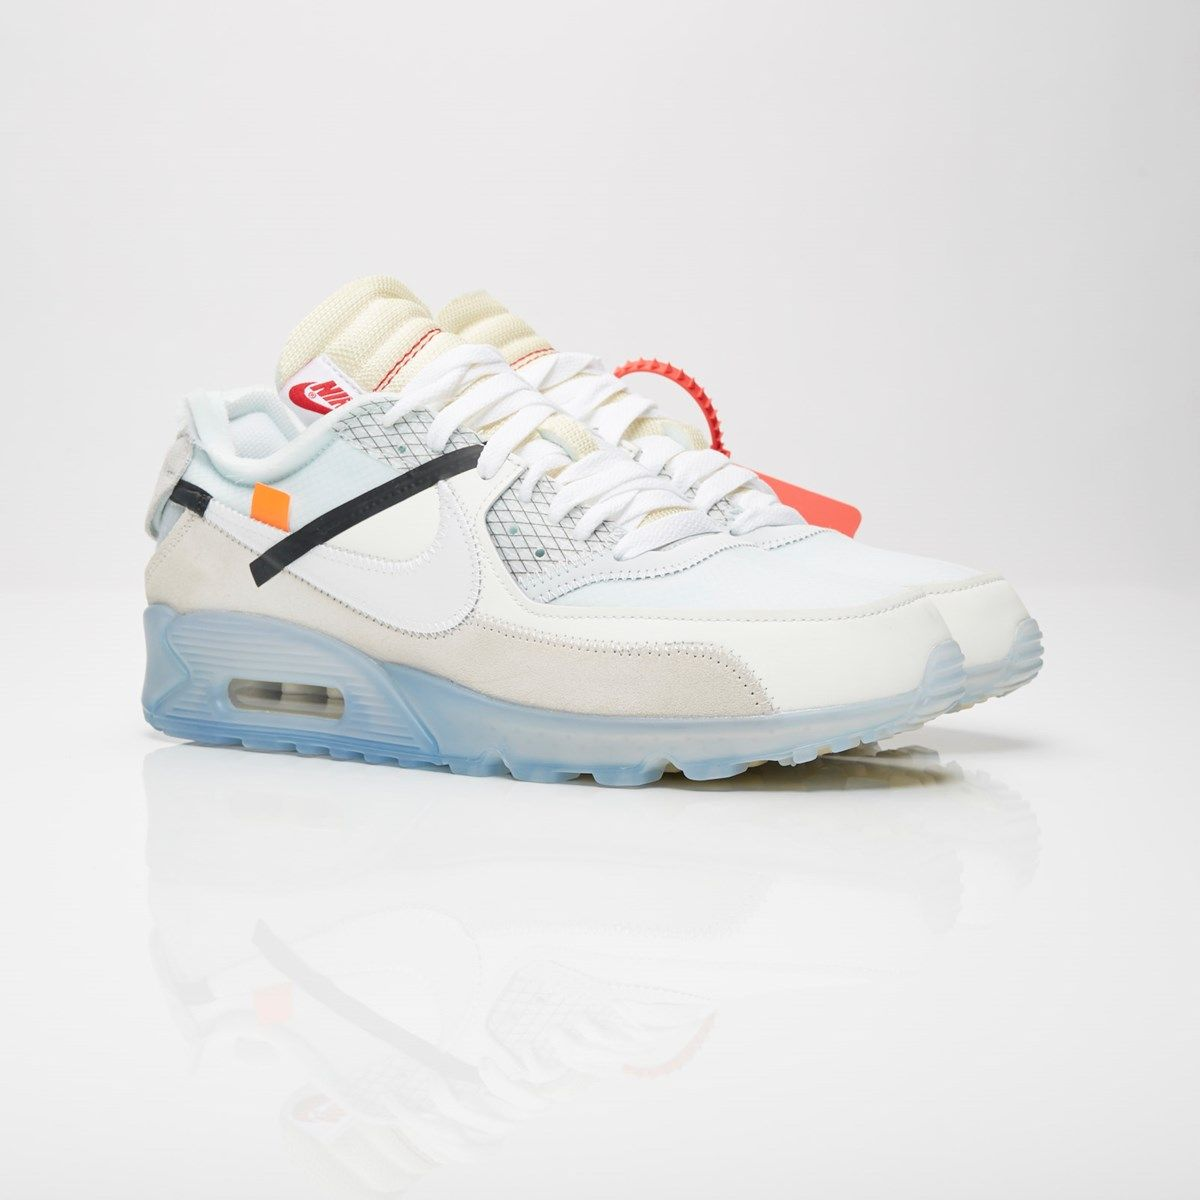 the latest 0eb84 efc50 Nike The 10  Air Max 90 - Aa7293-100 - Sneakersnstuff   sneakers   streetwear  online since 1999